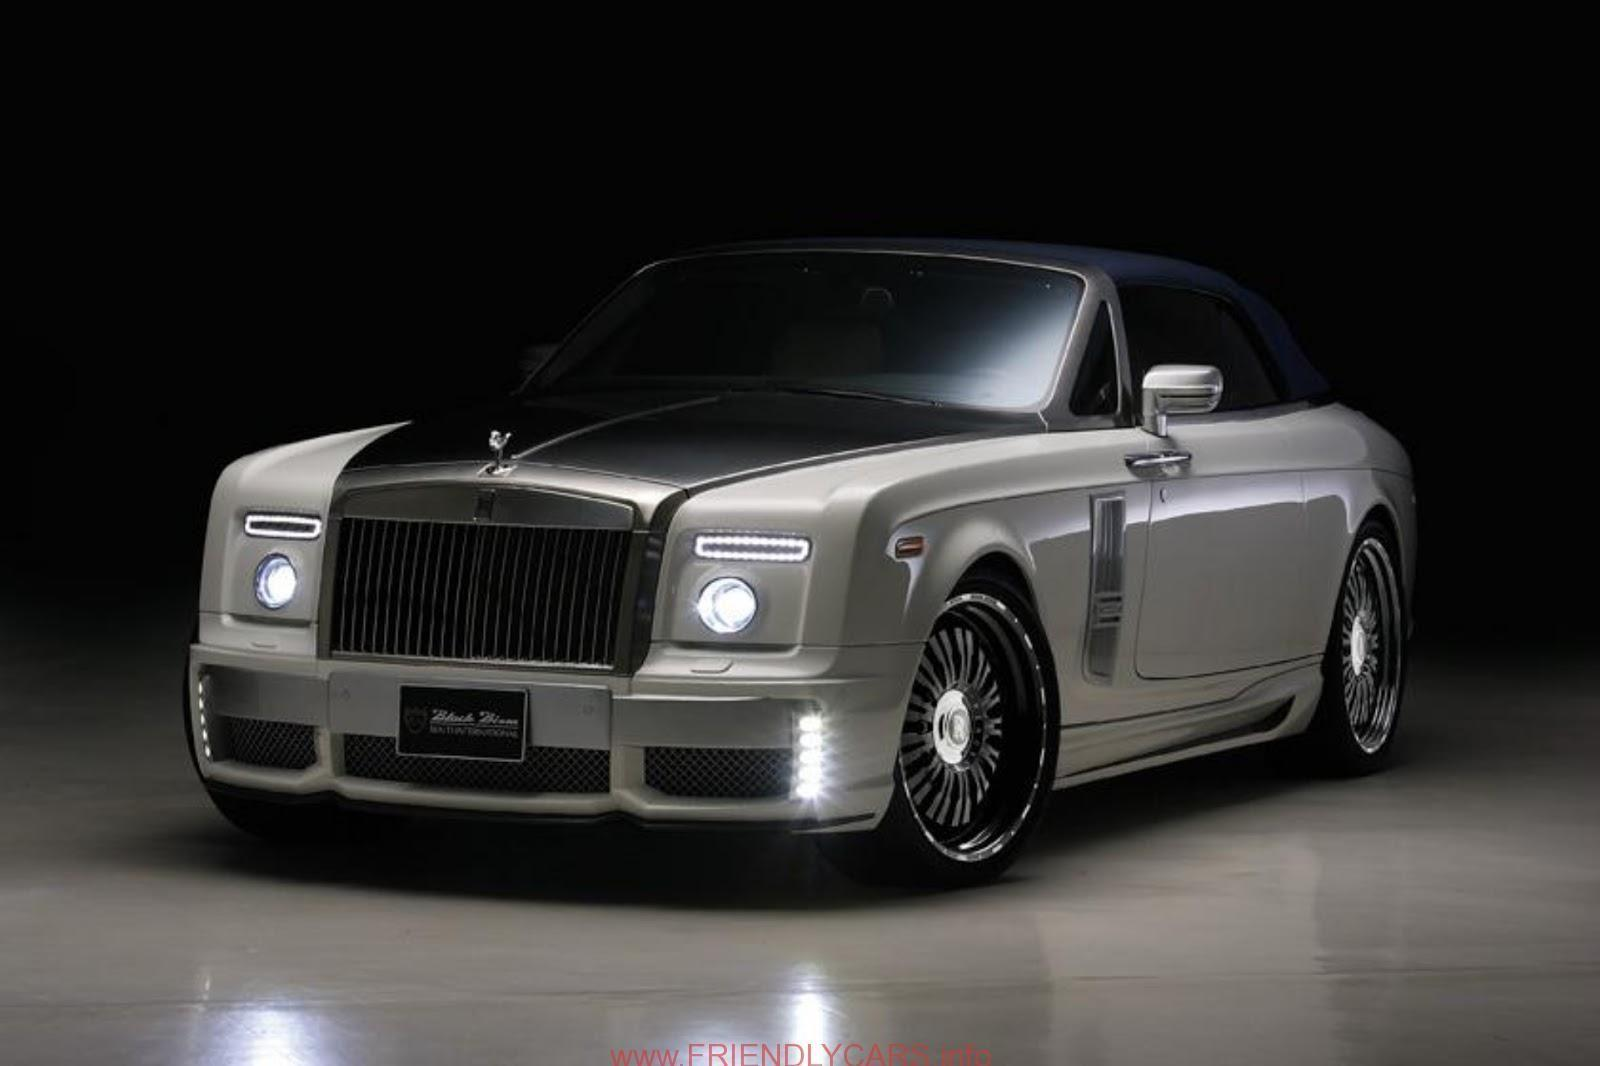 cool 2014 rolls royce phantom white car image hd Rolls Royce